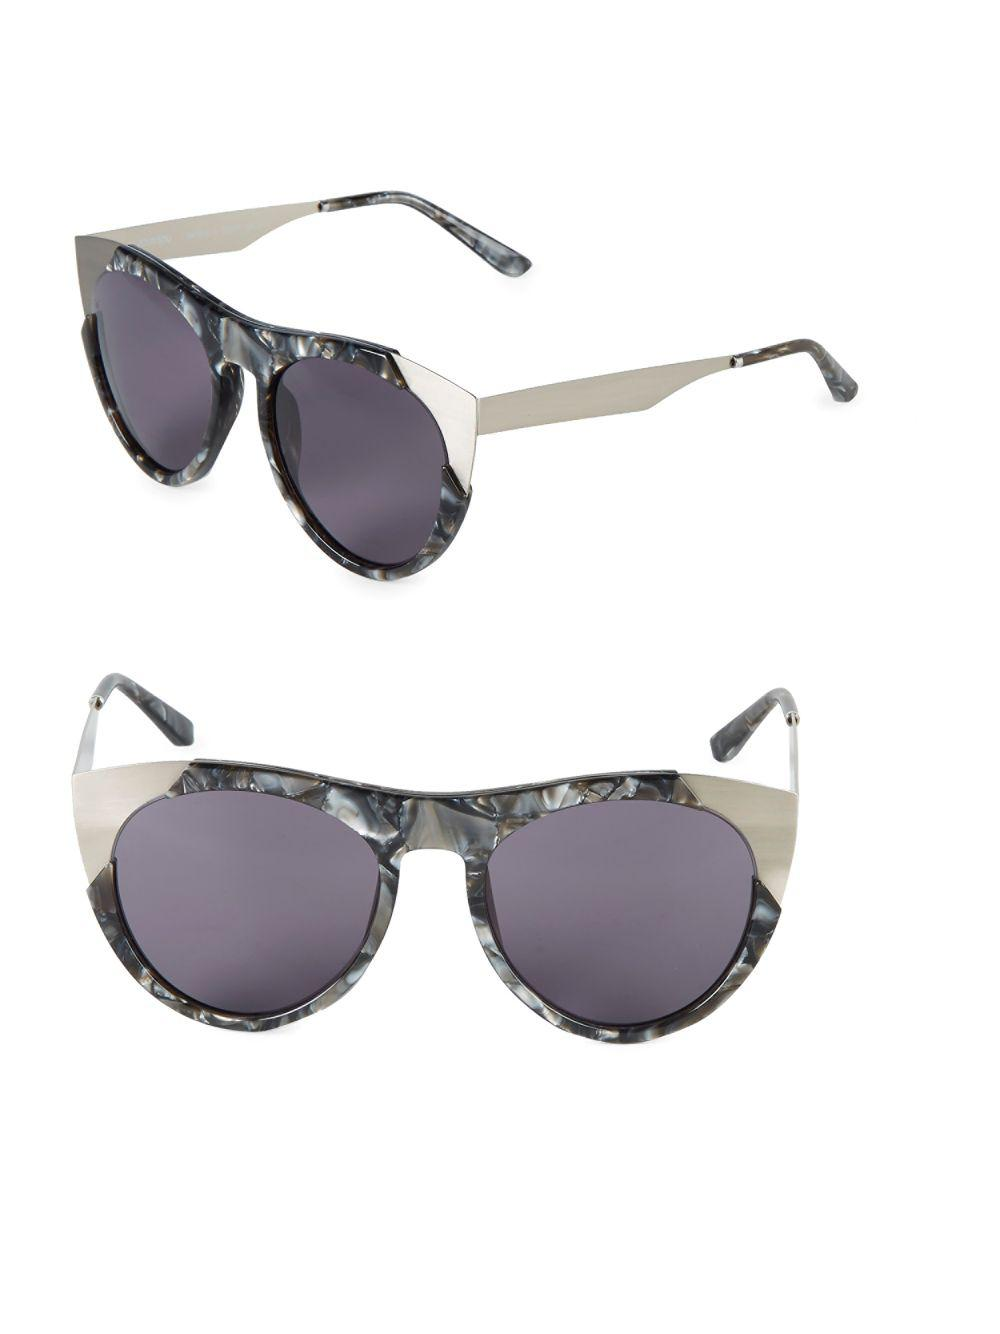 e4a9ad37d05 Lyst - Smoke X Mirrors 53mm Butterfly Sunglasses in Gray